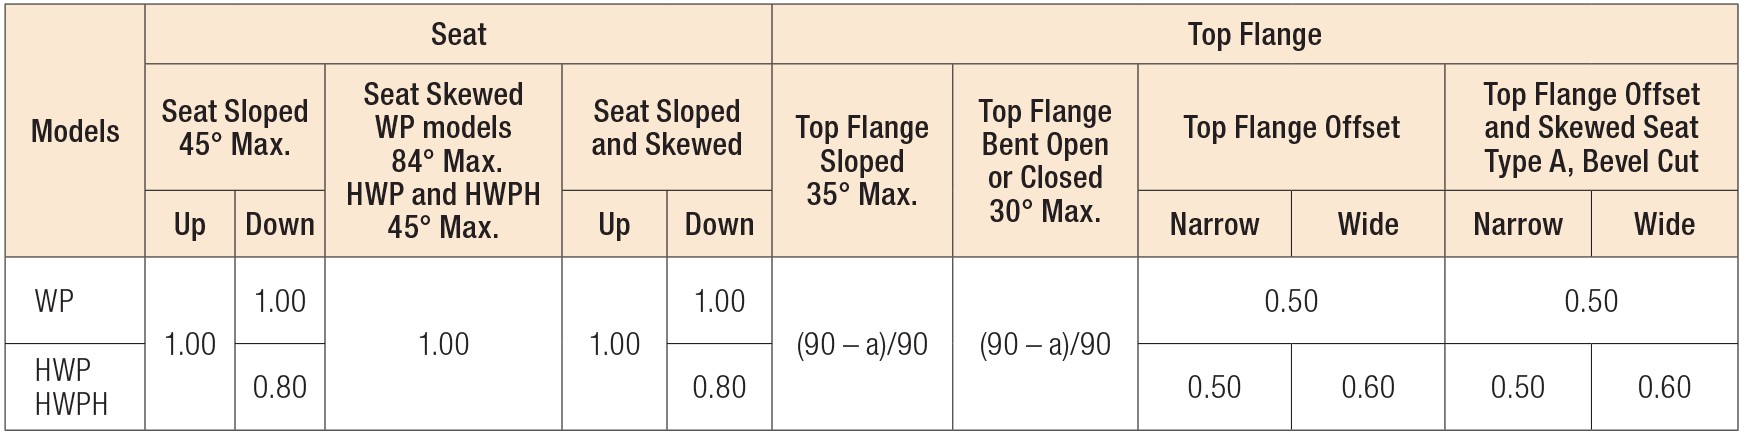 Modifications and Associated Load Reductions for WP/HWP/HWPH